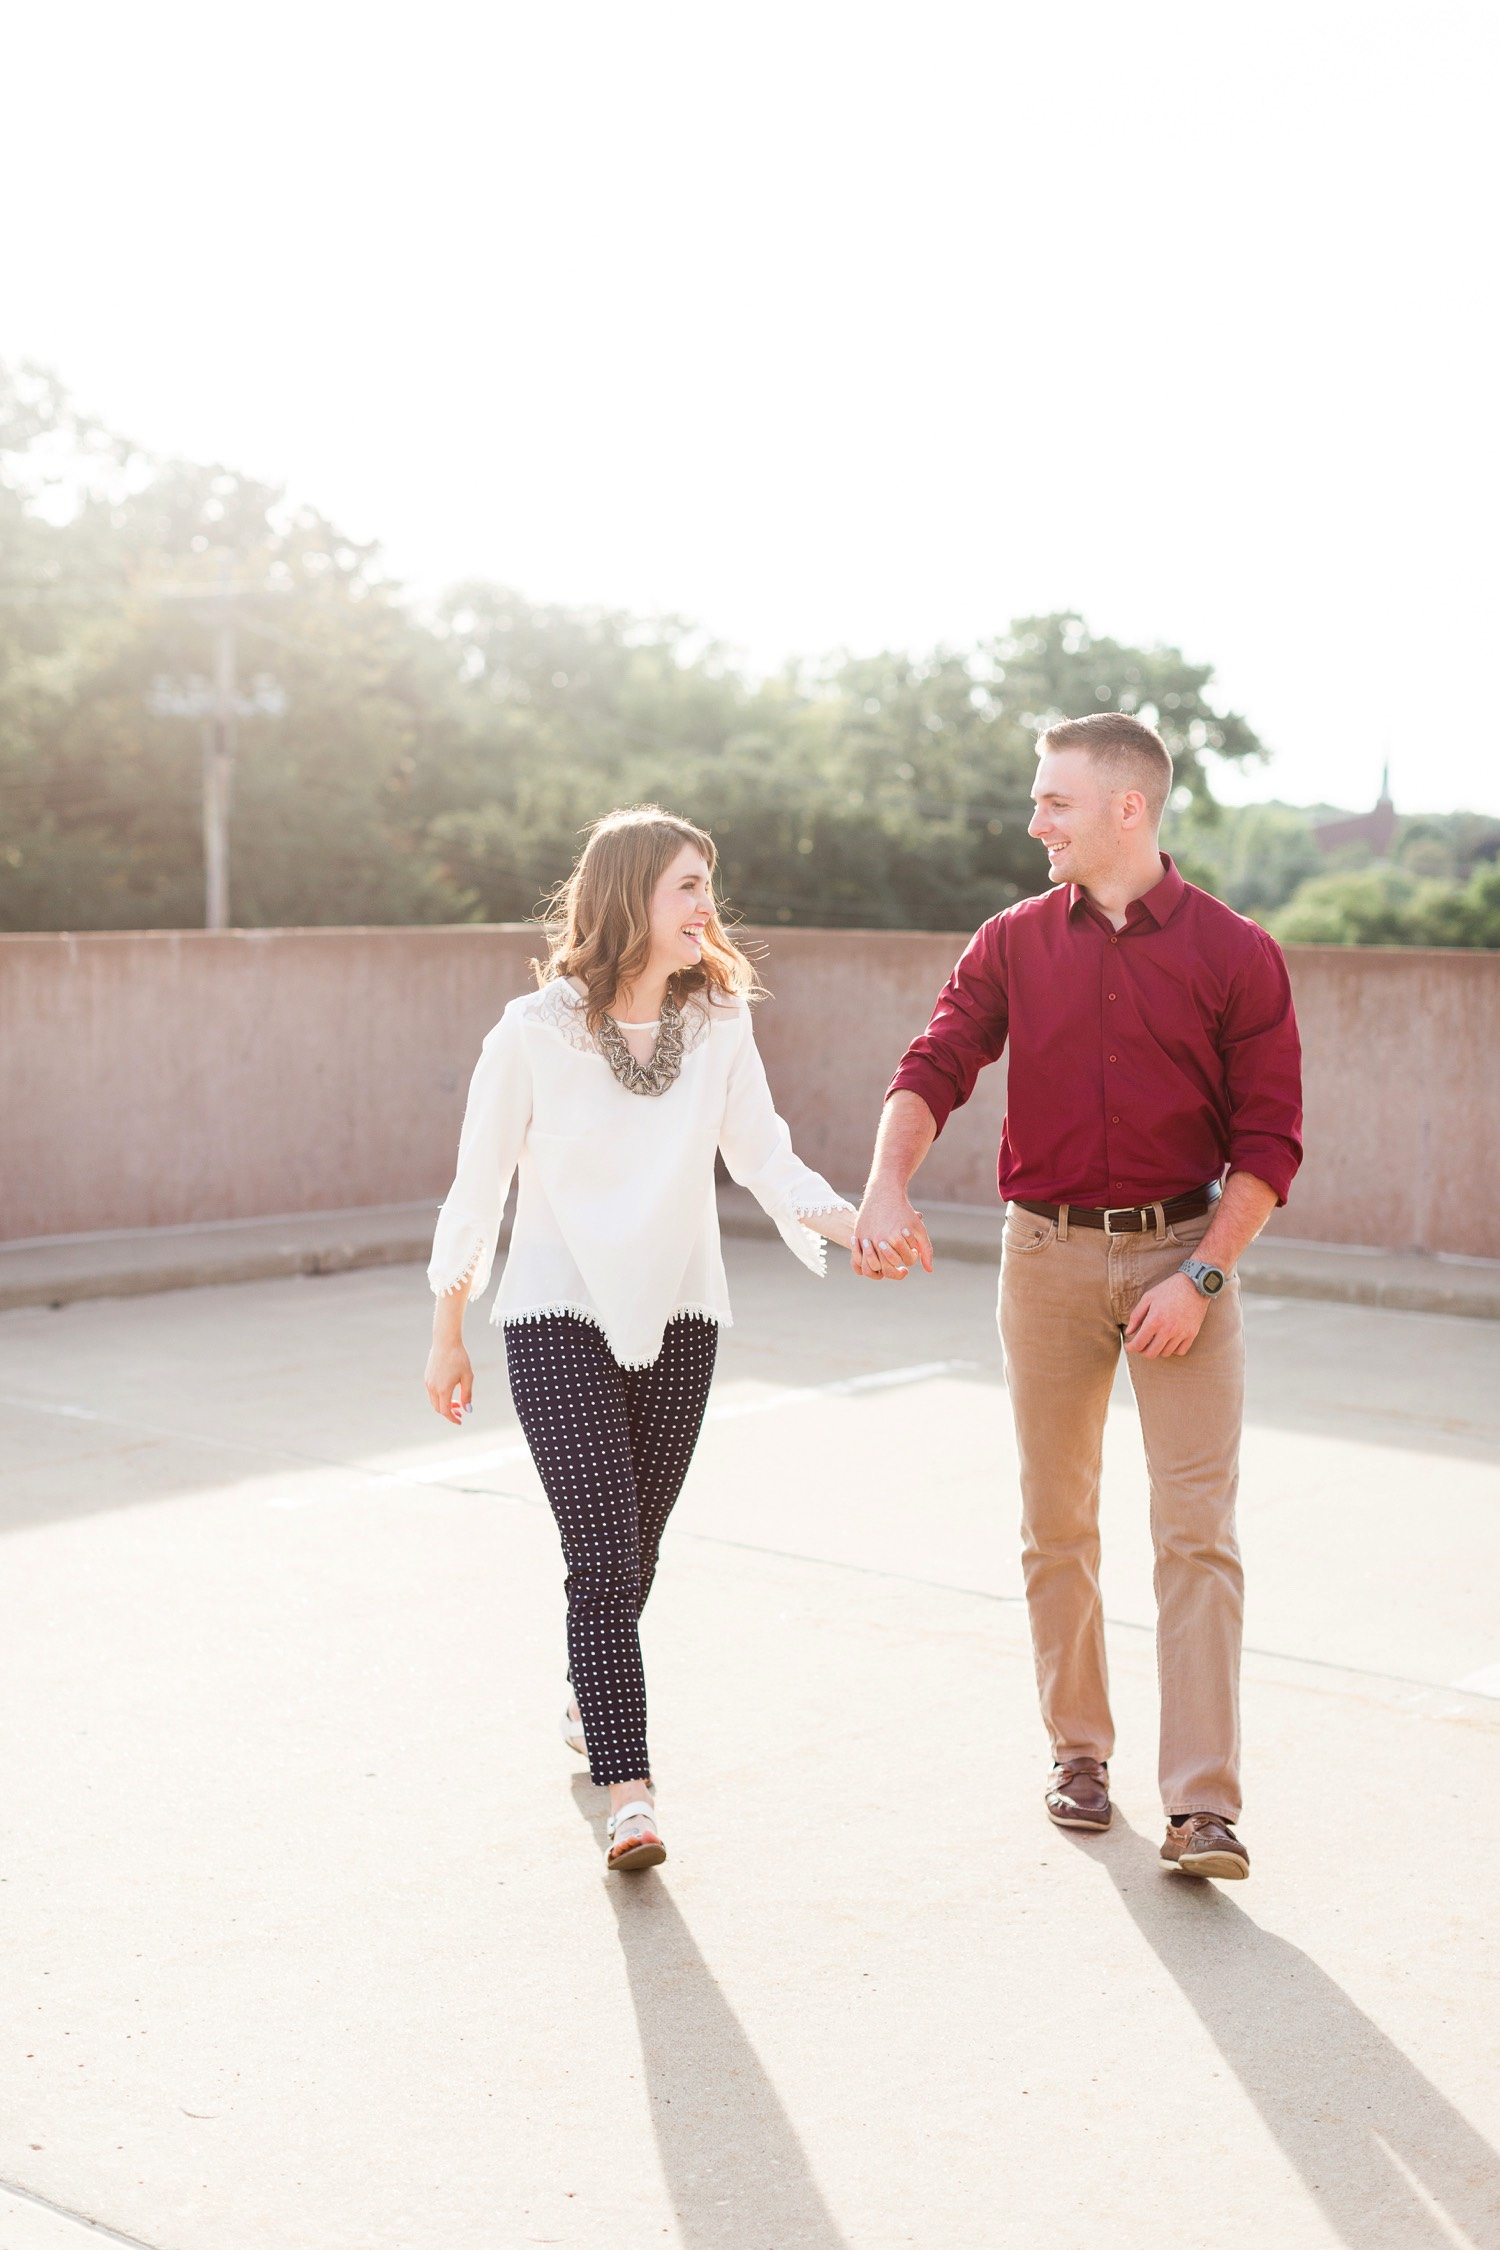 001_Abigail Berge Photography-Engagement-2.jpg